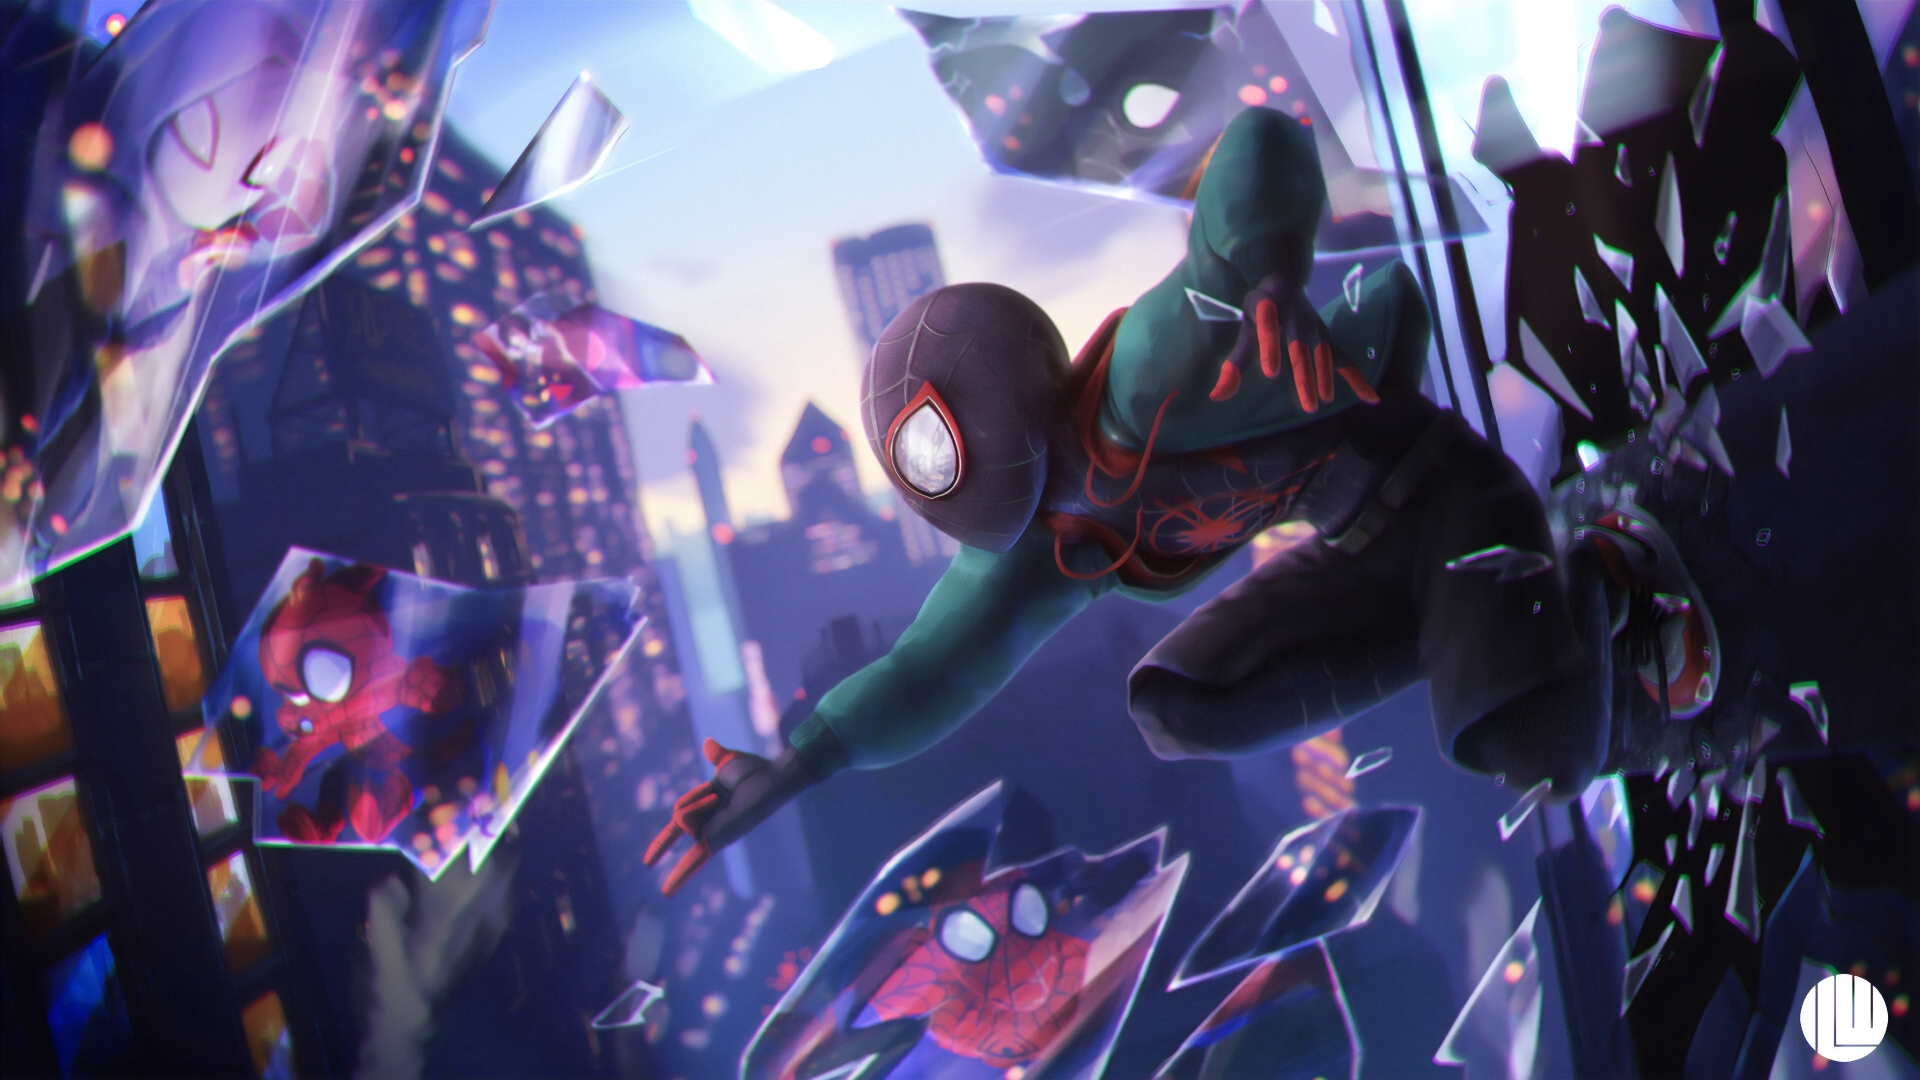 Spider Man Into The Spider Verse Wallpaper 4k Ultra Hd Id3485